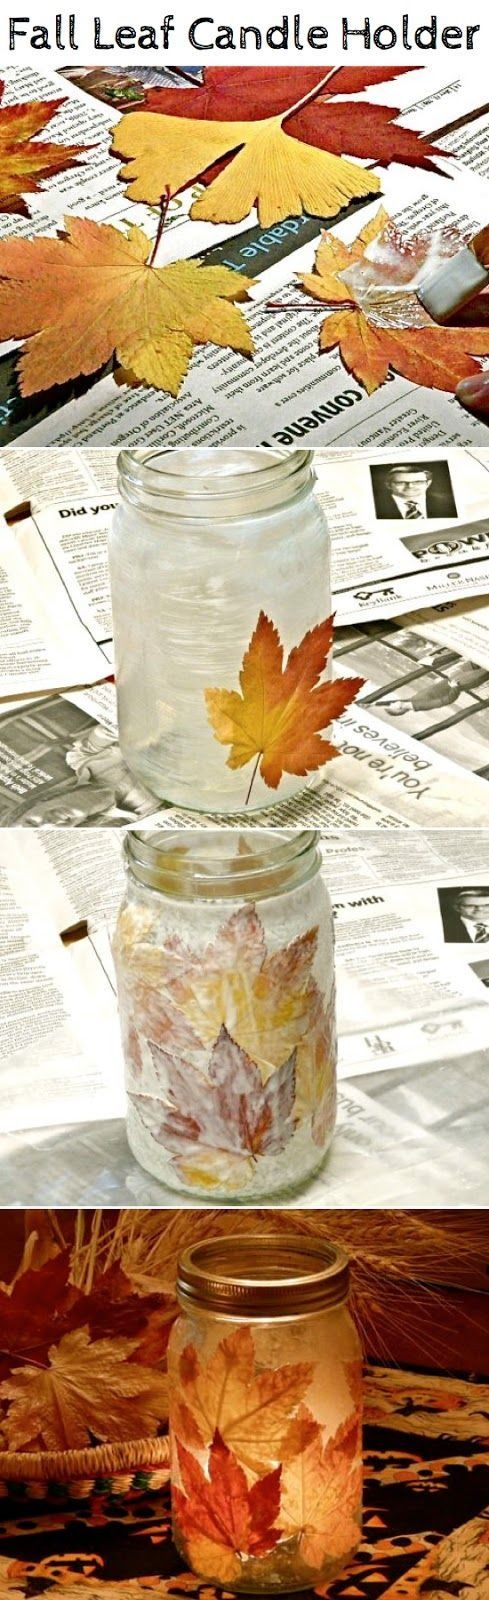 Fall Mason Jar Idea!  I know I'll be collectiong leaves on my trip to  SC this fall!!